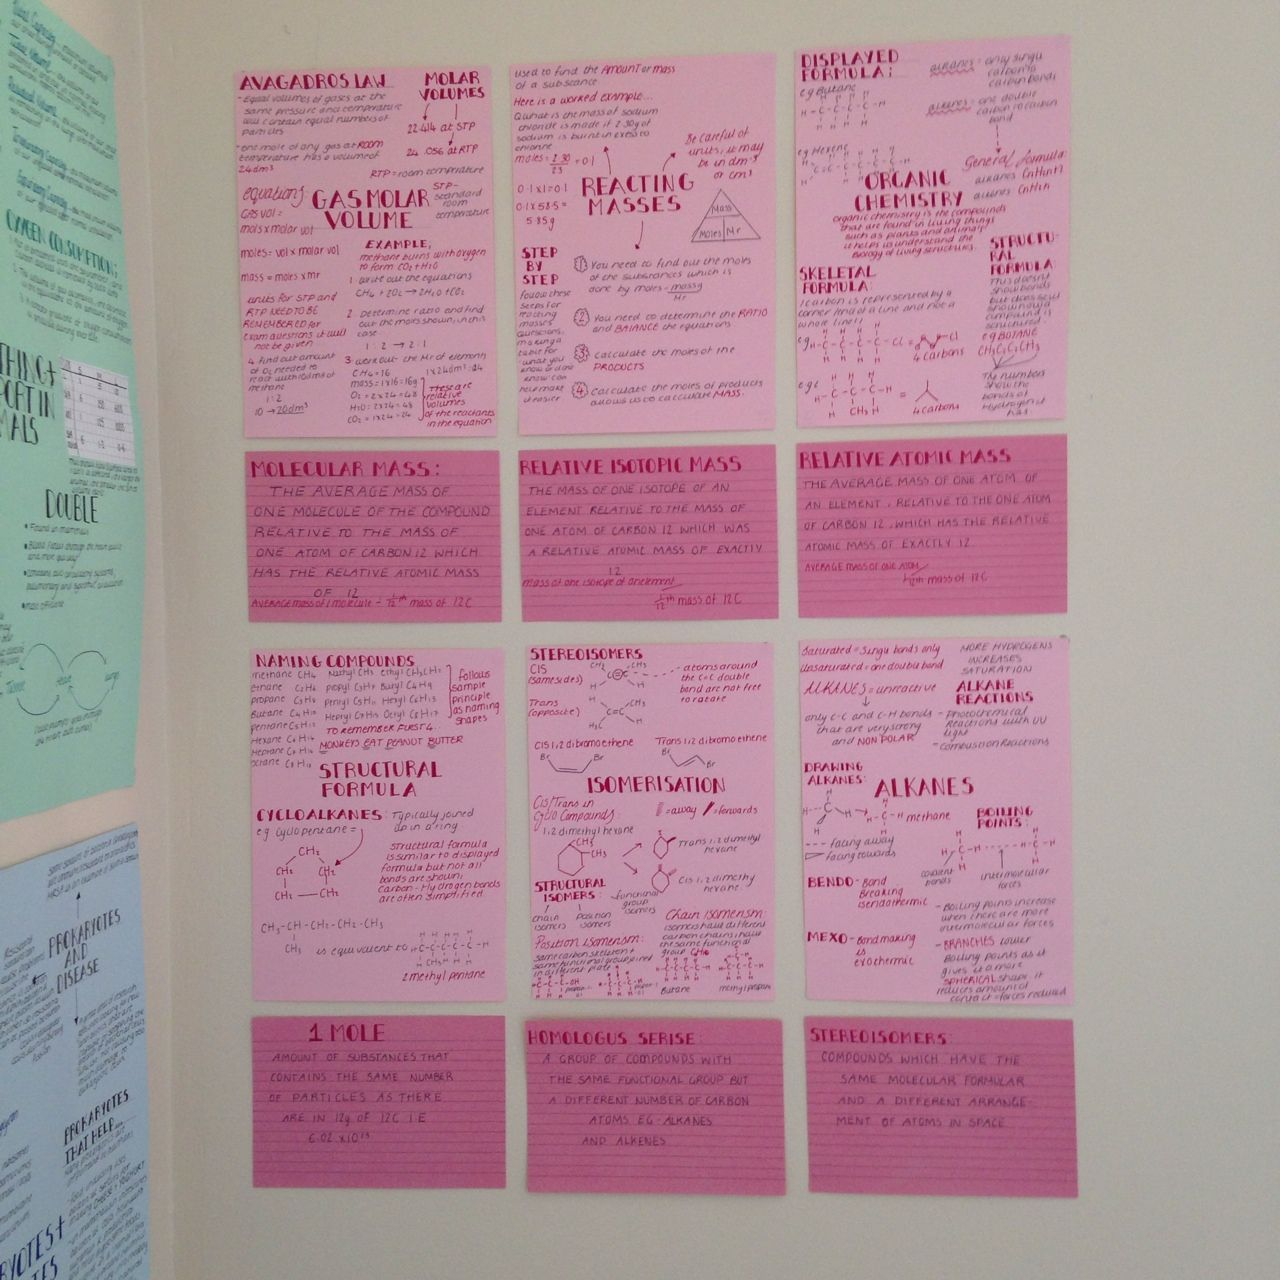 Pin by Amber S on school  | Study notes, Study organization